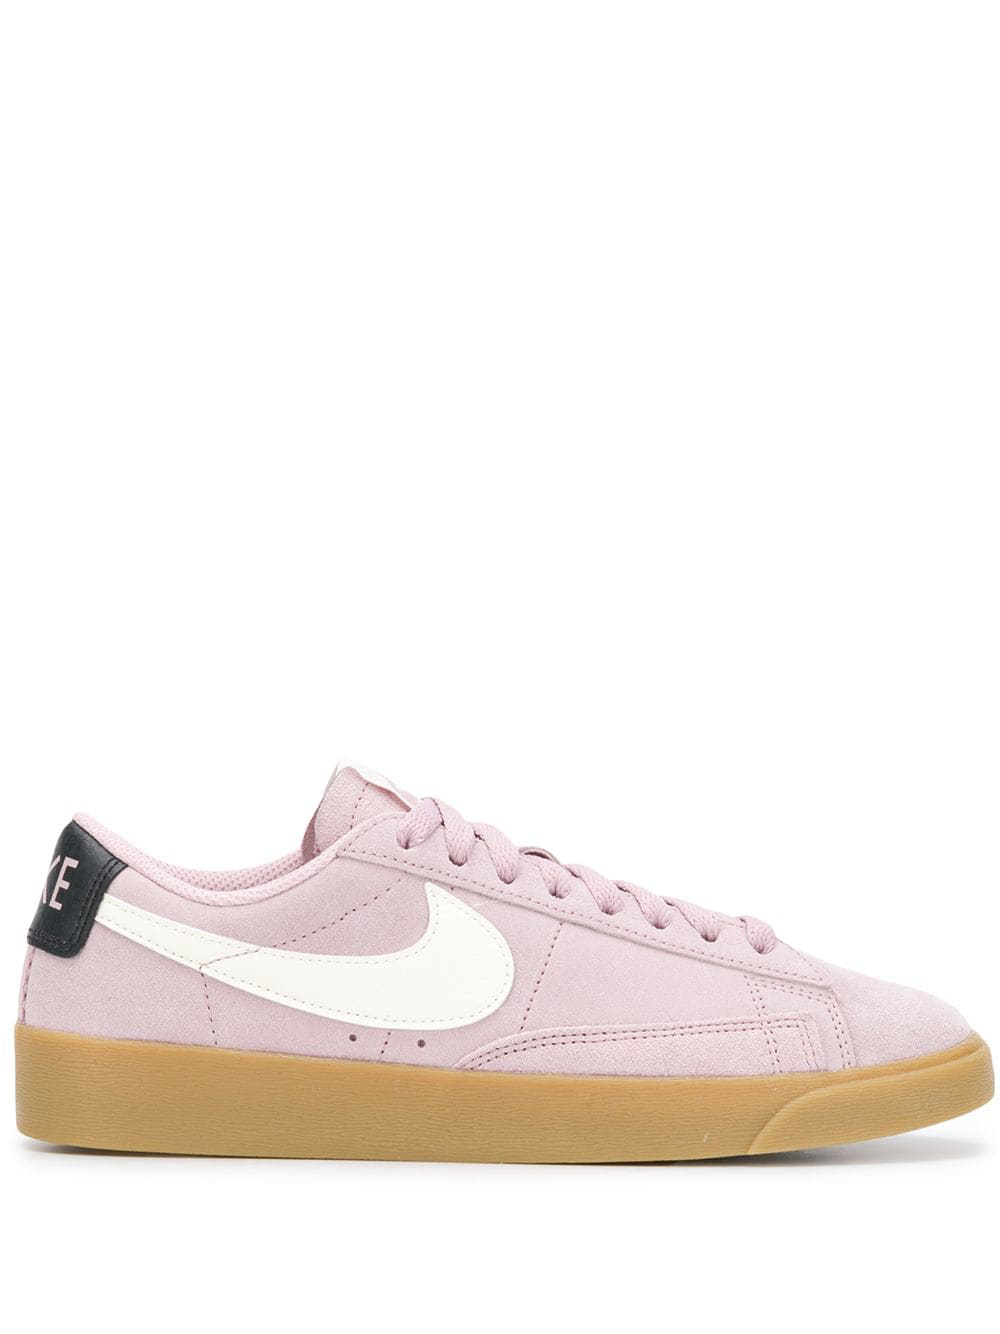 hot sale online 156ea a1dd0 Nike Blazer Low Sd Sneakers - Pink